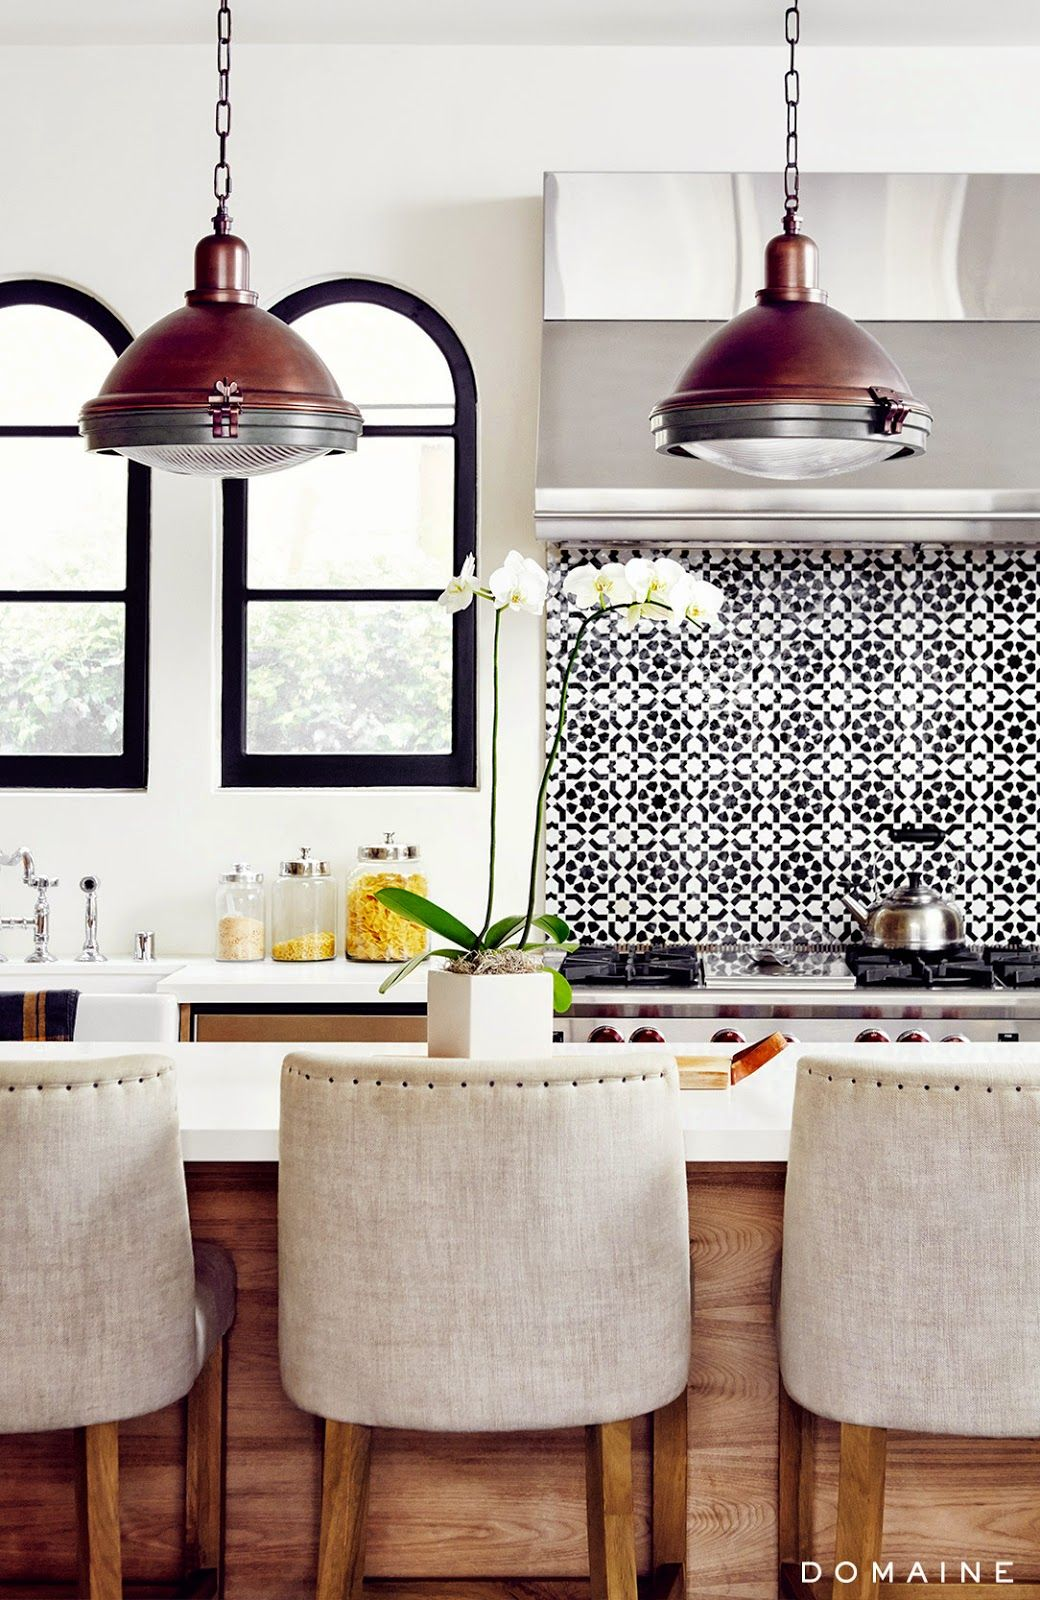 Traditional Rustic Kitchen Of The Ultimate Inspiration For Spanish Styling